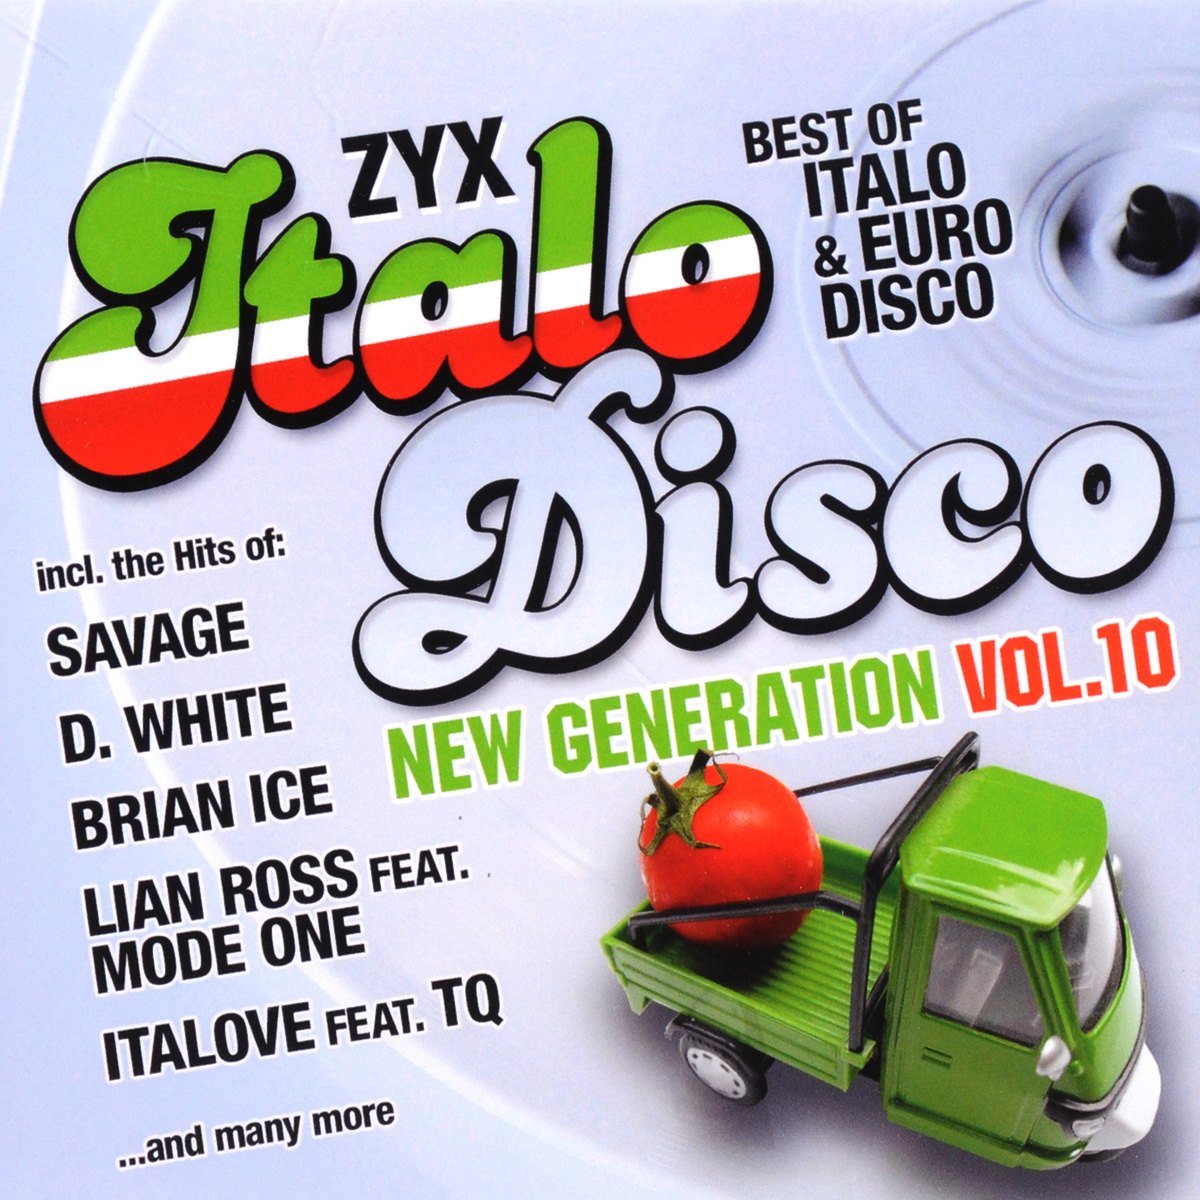 Лиан Росс,Райан Пари,Брайен Айс,Mirko Hirsch,Laserdance,Italove,Cristina Manzano,Steve Burbon,Peter Wilson,Digitalo Italo Disco New Generation Vol. 10 (2 CD) peter lamborn wilson false documents